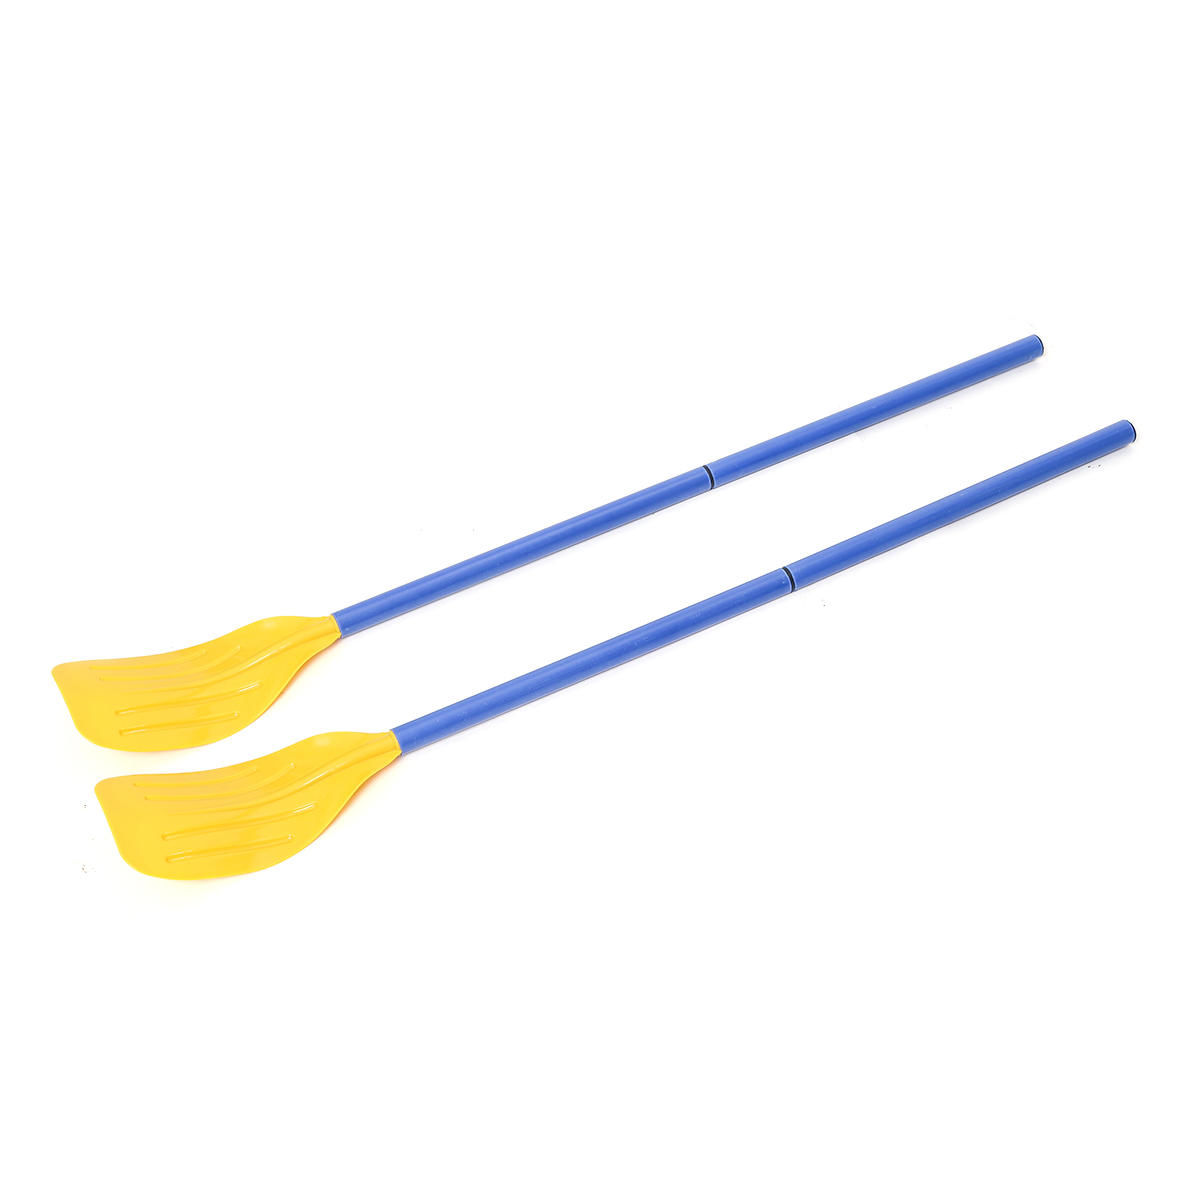 Detachable Boat Oars Paddle Assemble Strengthened ABS For Inflatable Rowing Fishing Raft Kayak Canoe